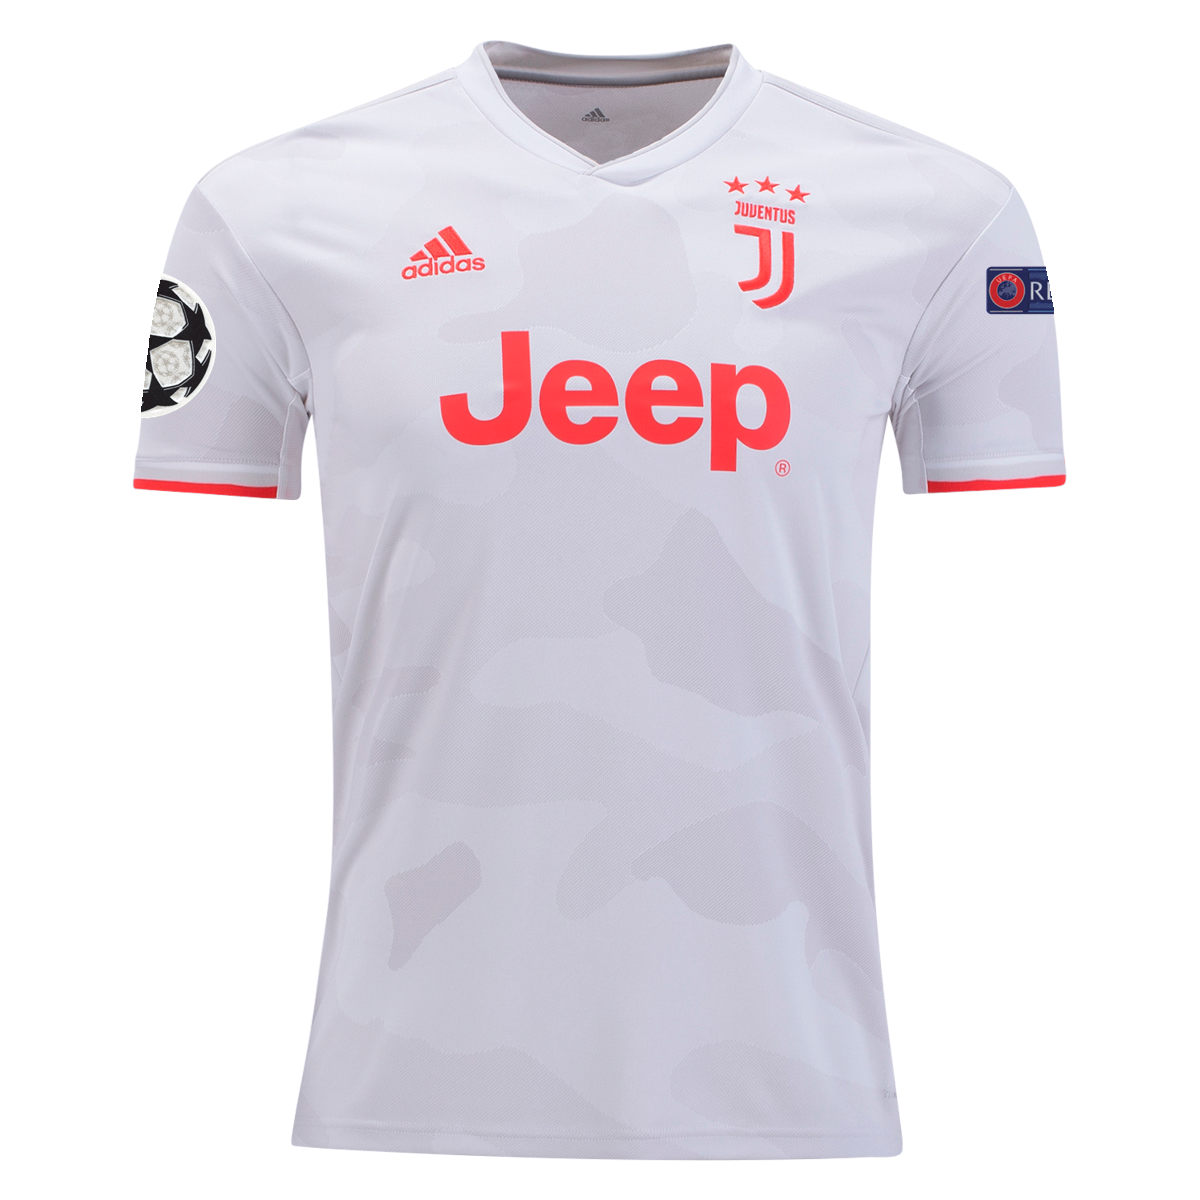 Adidas Juventus Away Ucl Jersey 19 20 L In 2020 With Images Soccer Jersey Juventus Soccer World Soccer Shop